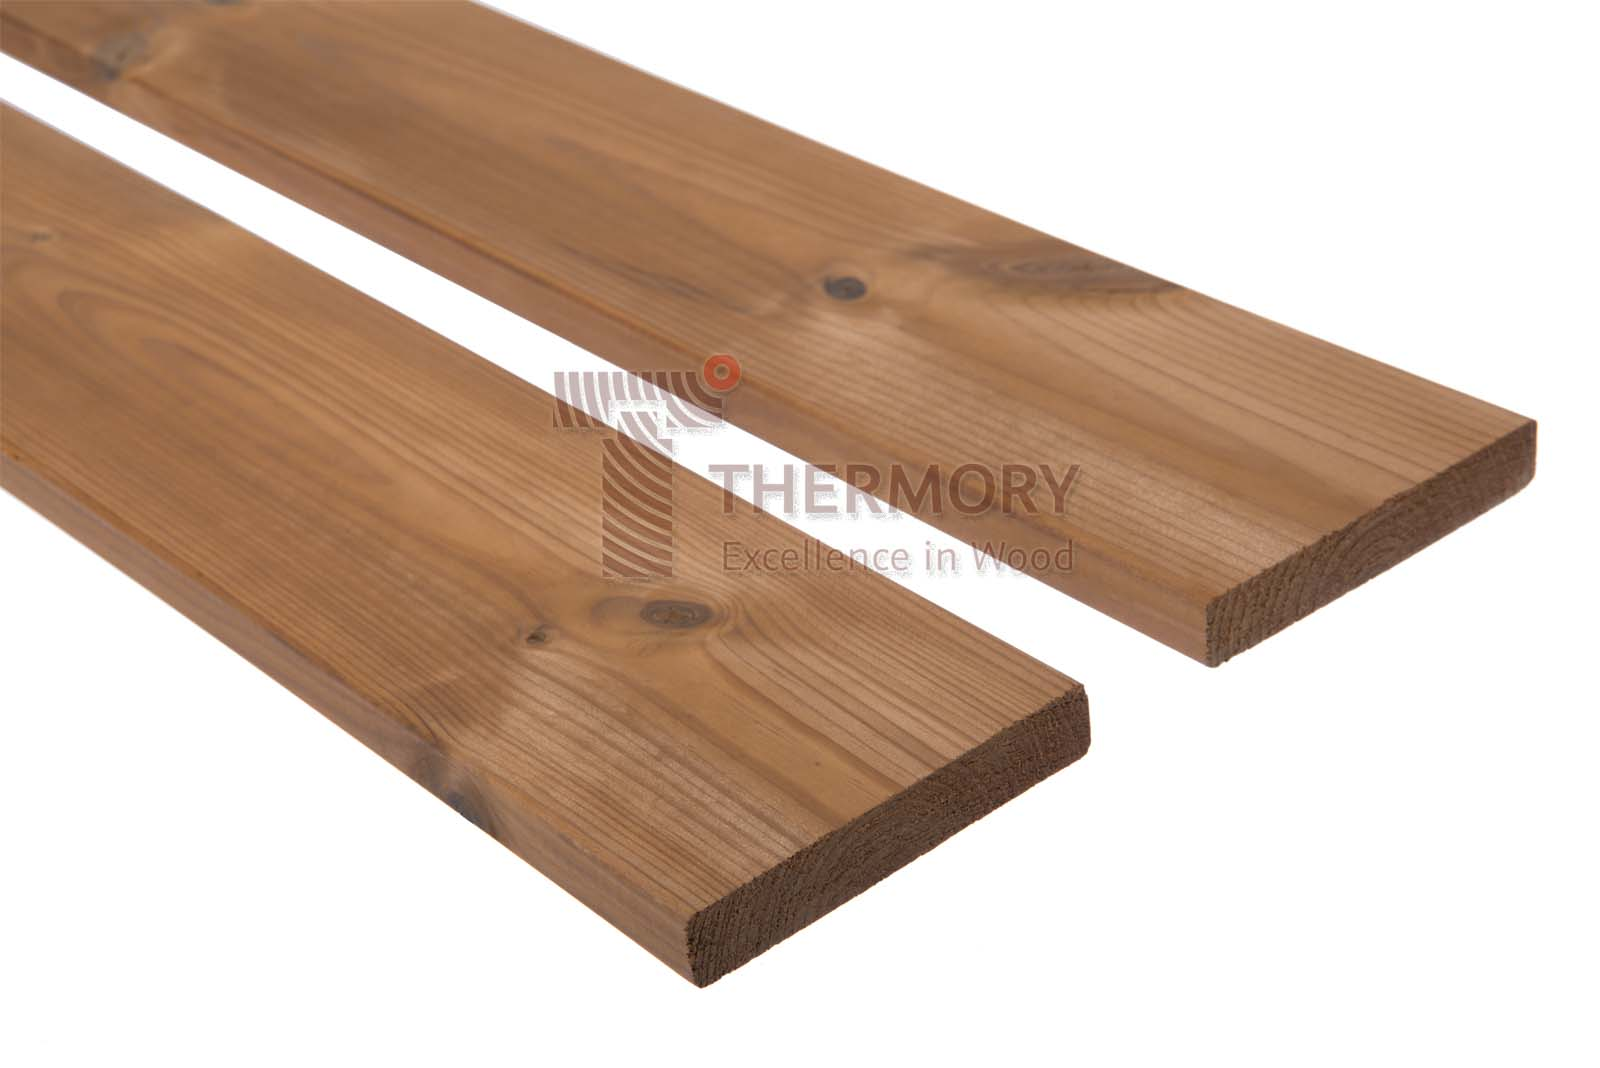 D4 20x115mm - The D4 profile is a s classic decking board which does not require any additional fitting systems.